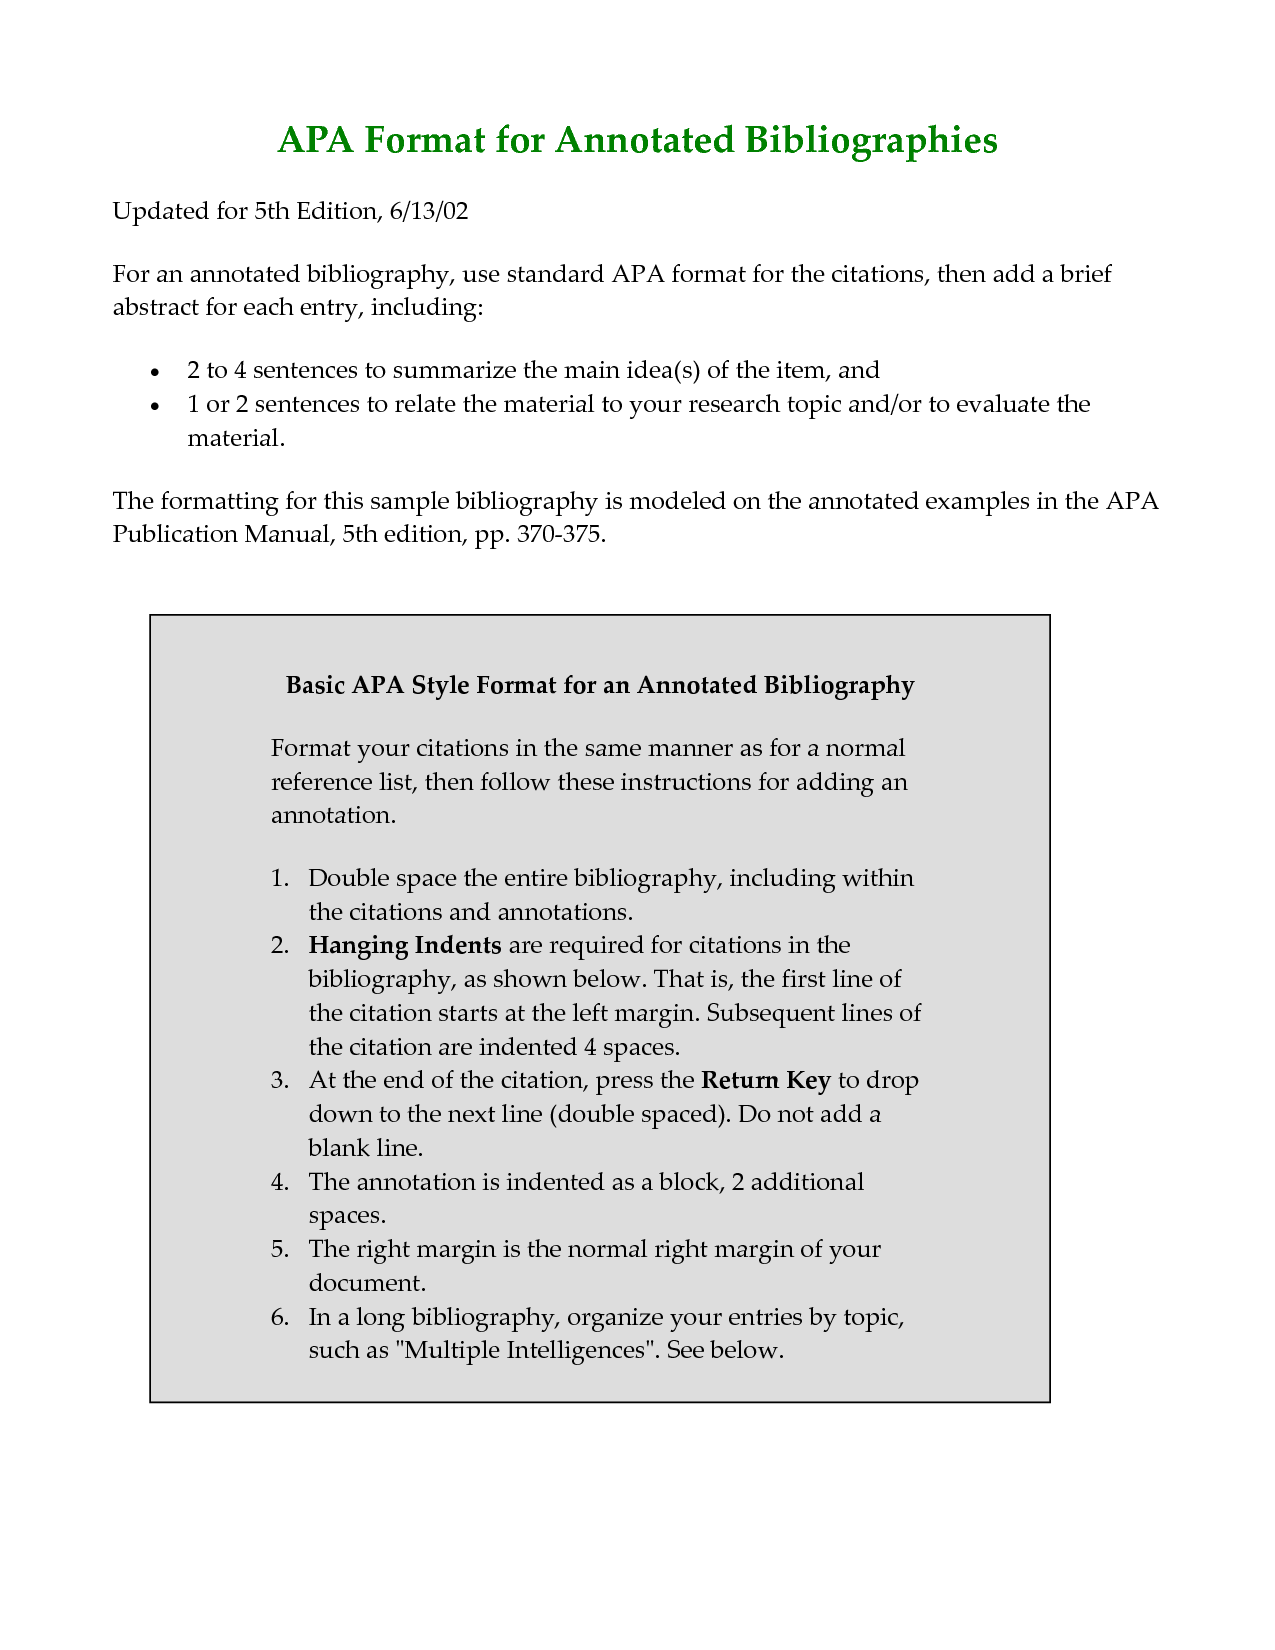 008 Research Paper Bibliography Dreaded Sample Format For Annotated Citing A Full